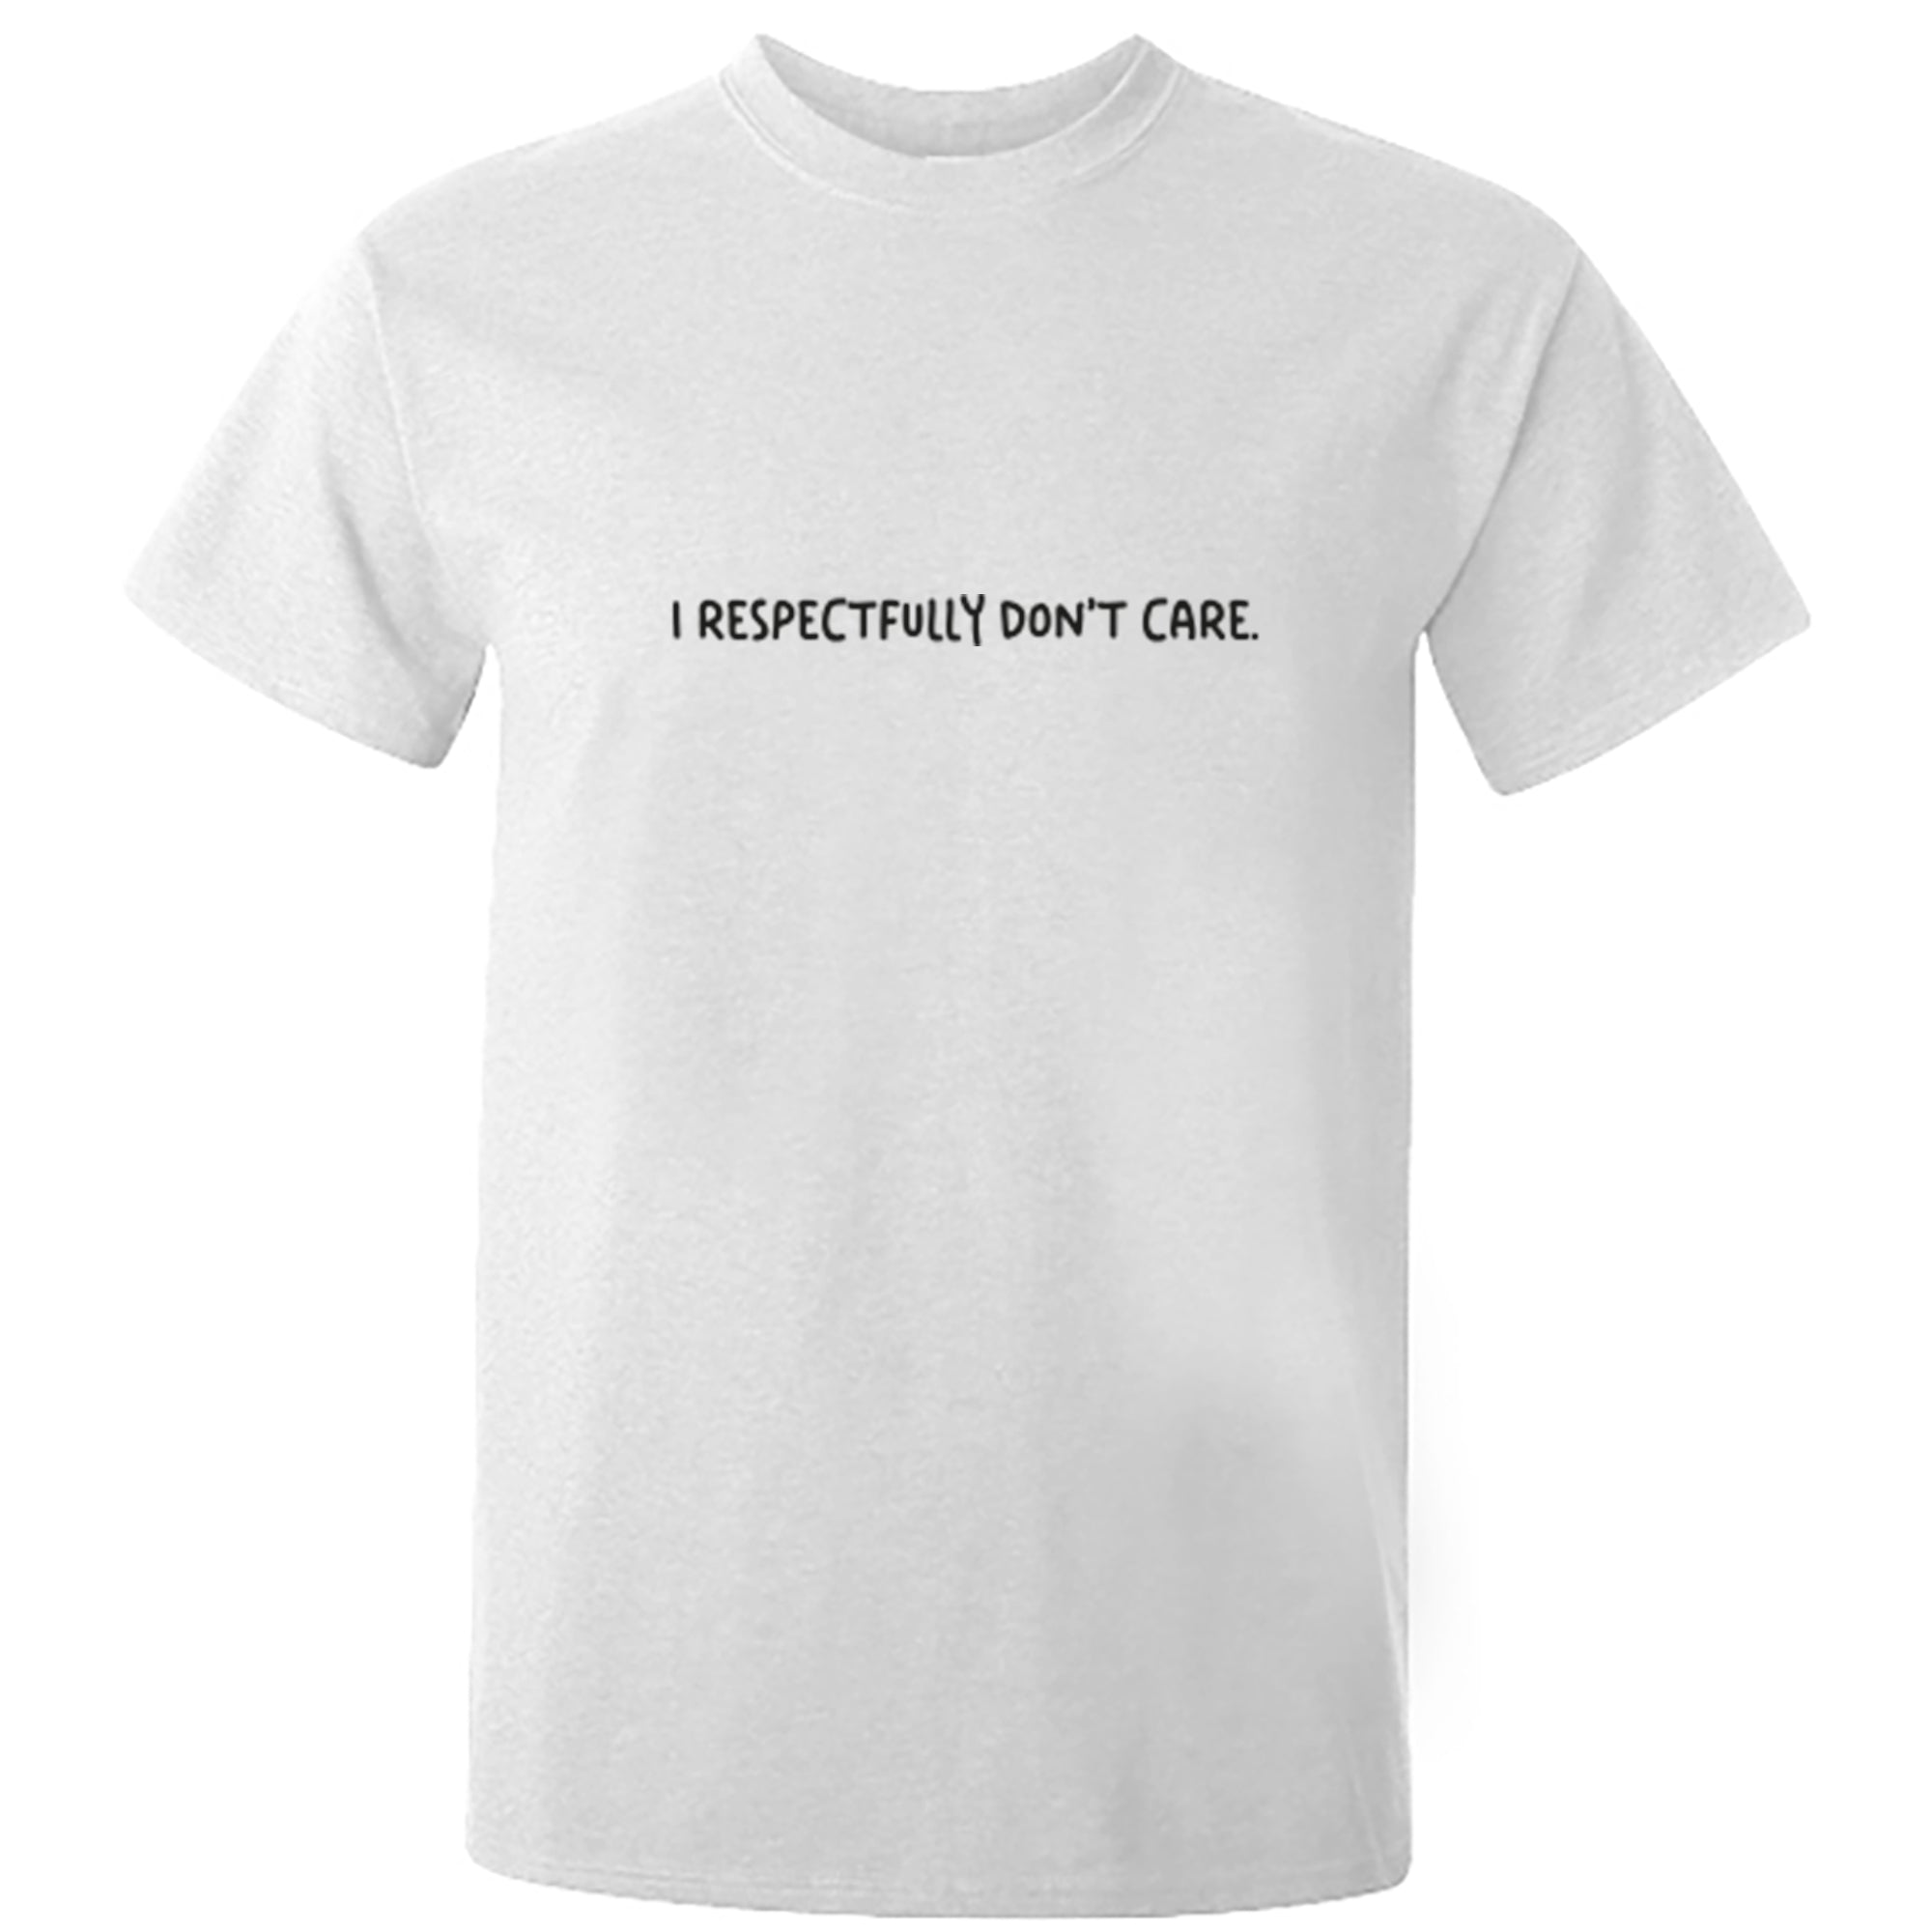 I Respectfully Don't Care Unisex Fit T-Shirt S1207